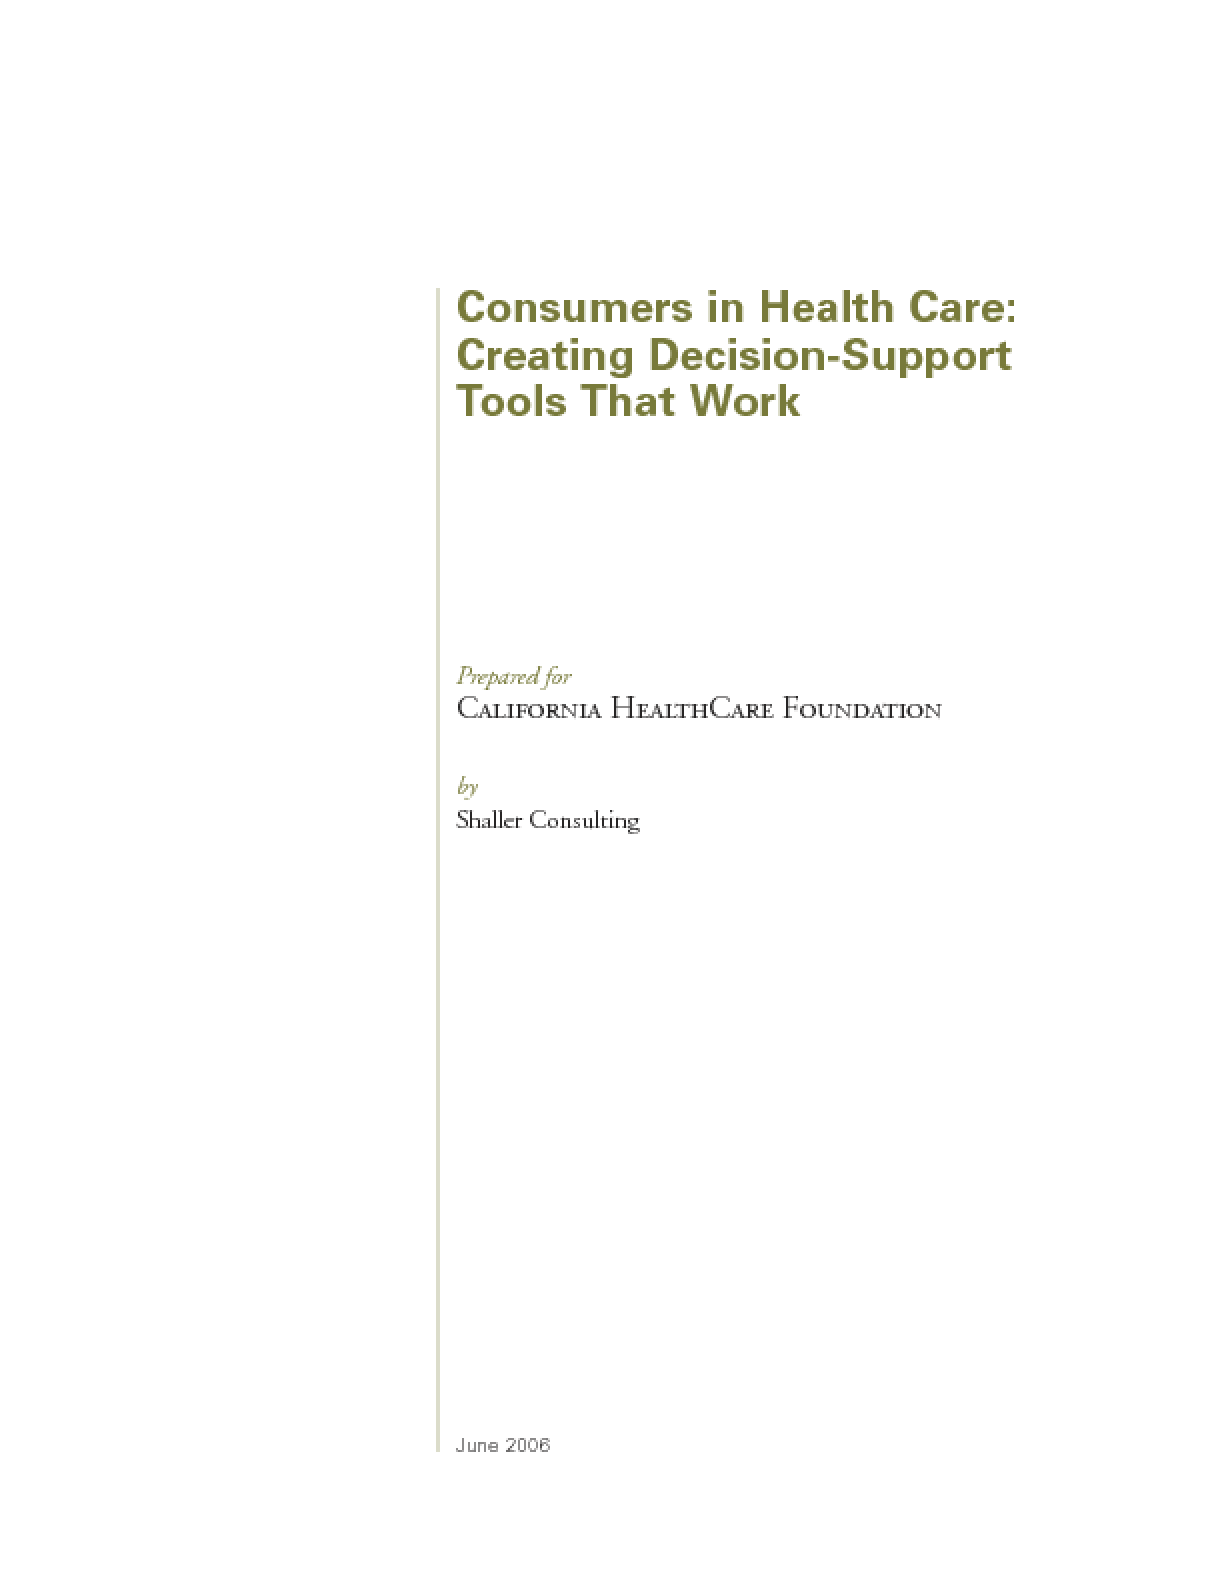 Consumers in Health Care: Creating Decision Support Tools That Work